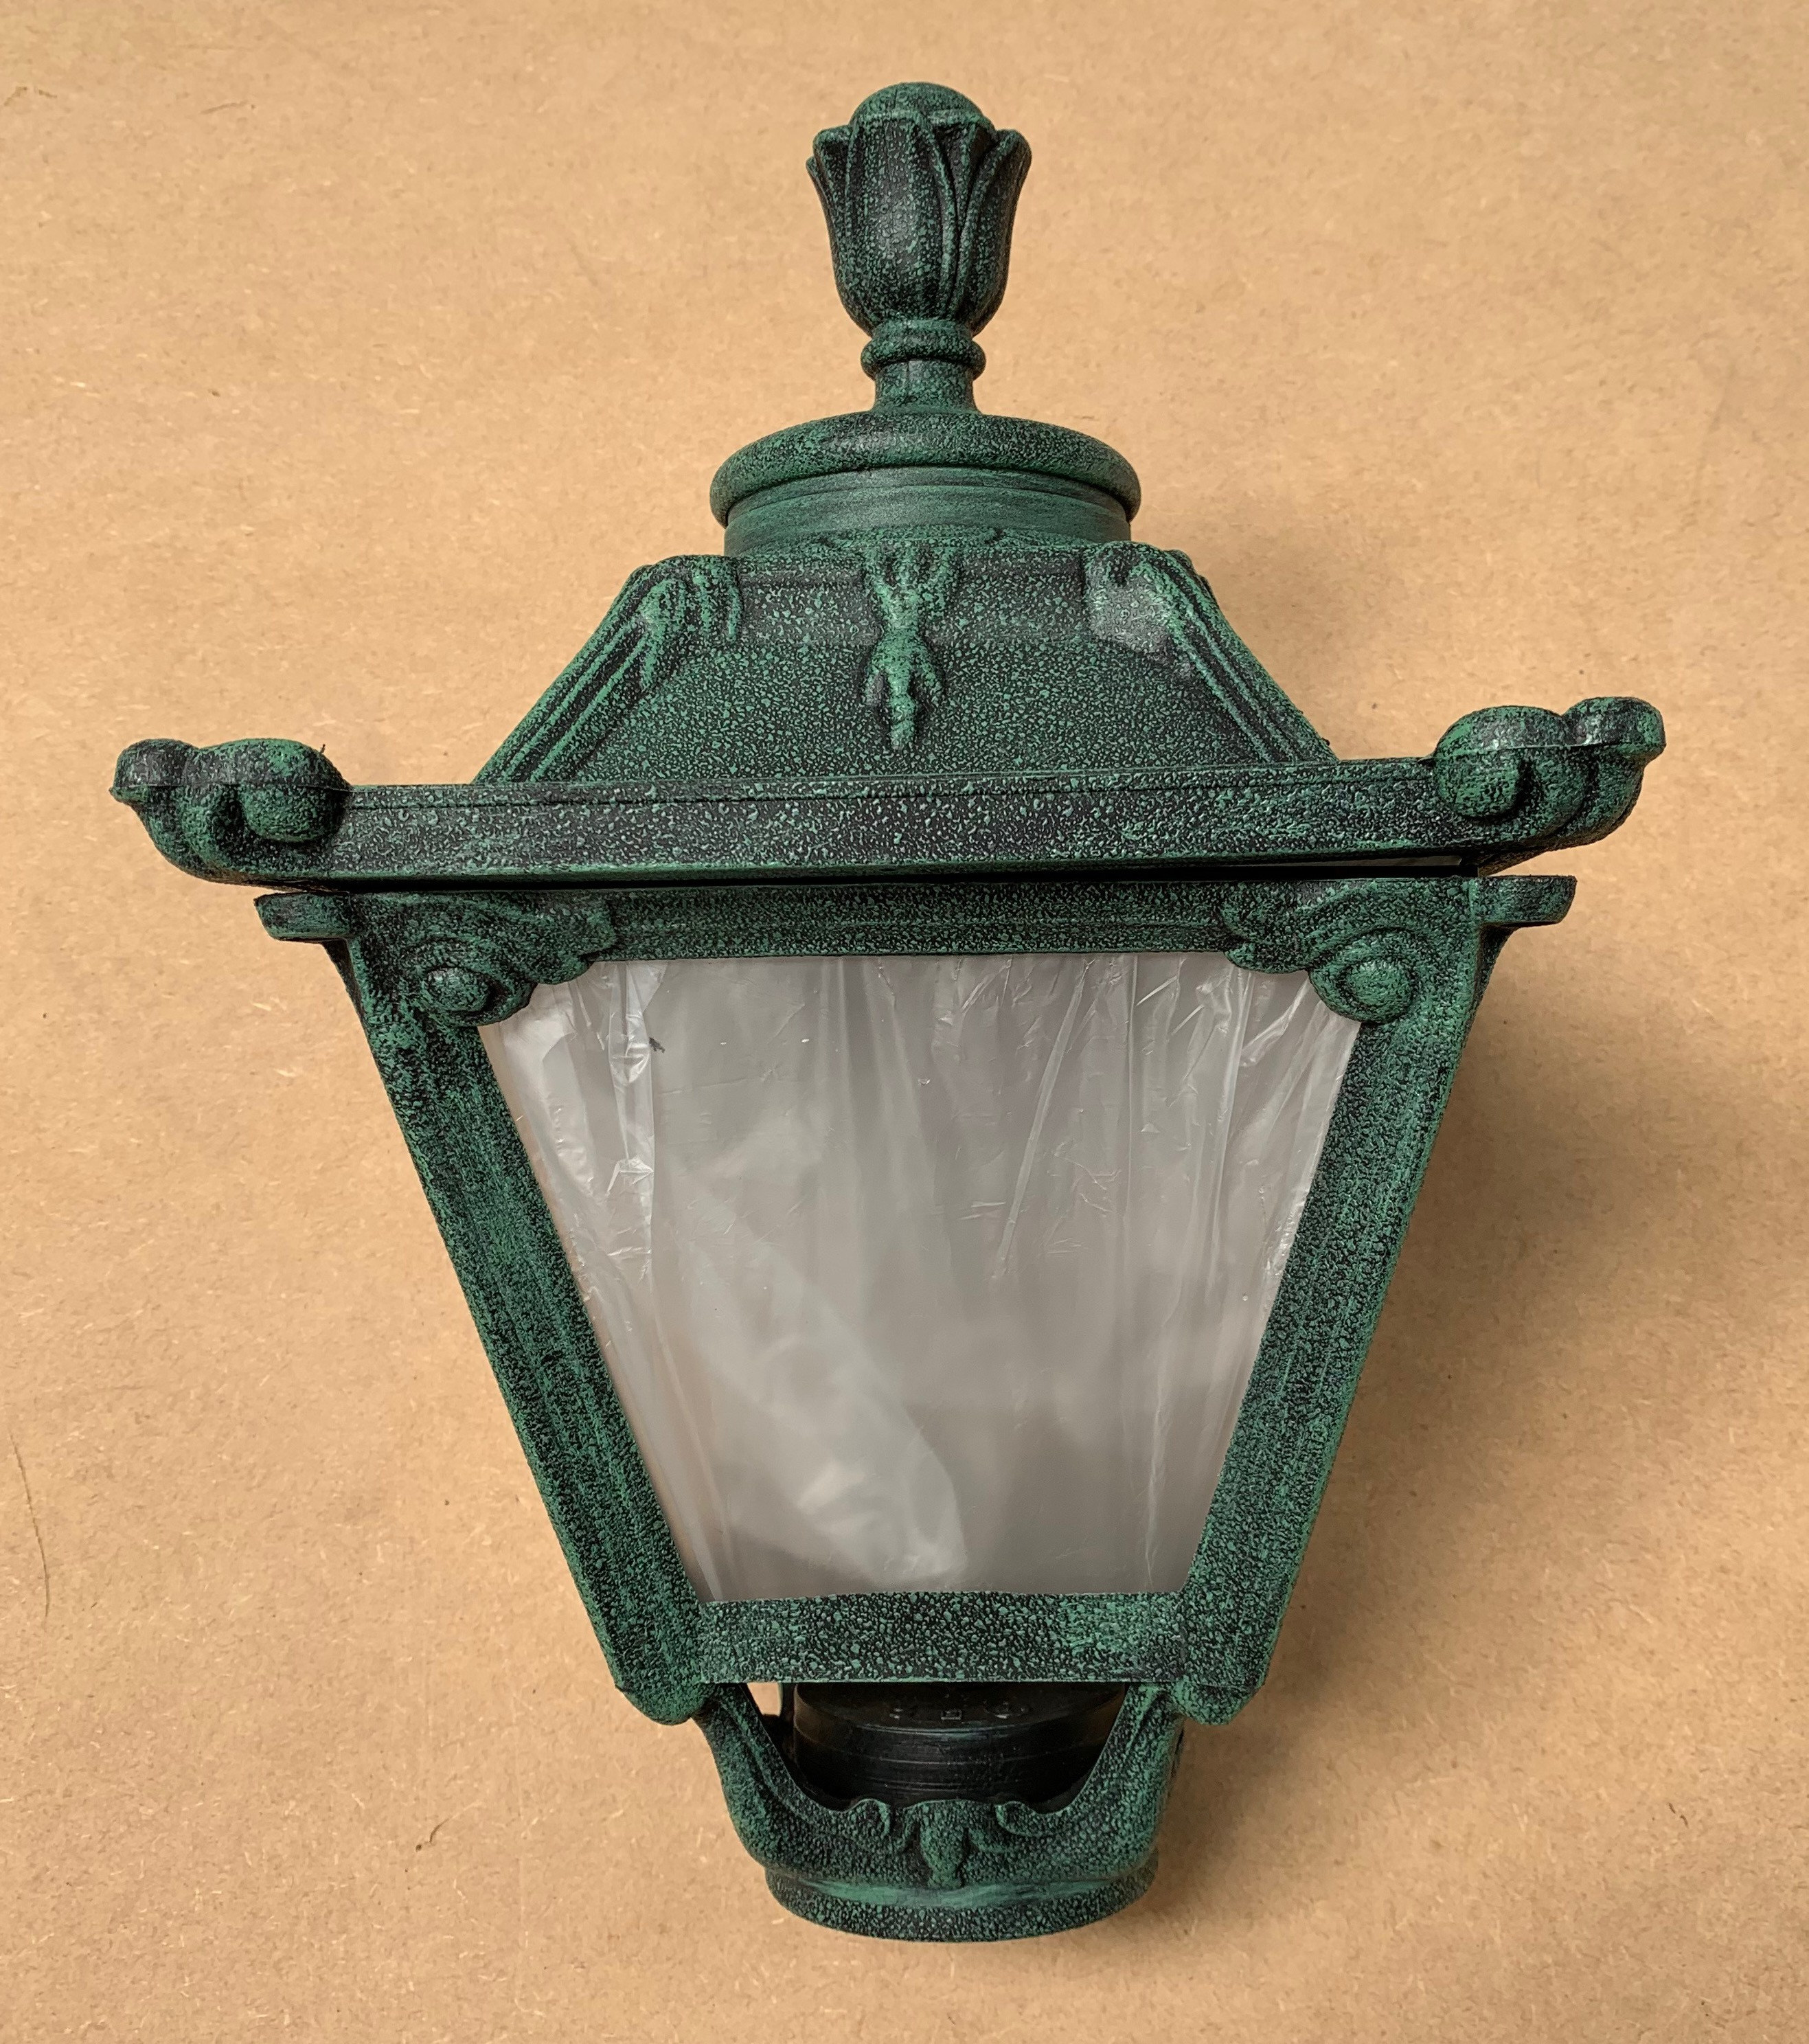 Fumagalli Q23G Roma Medium Lantern in Antique Green